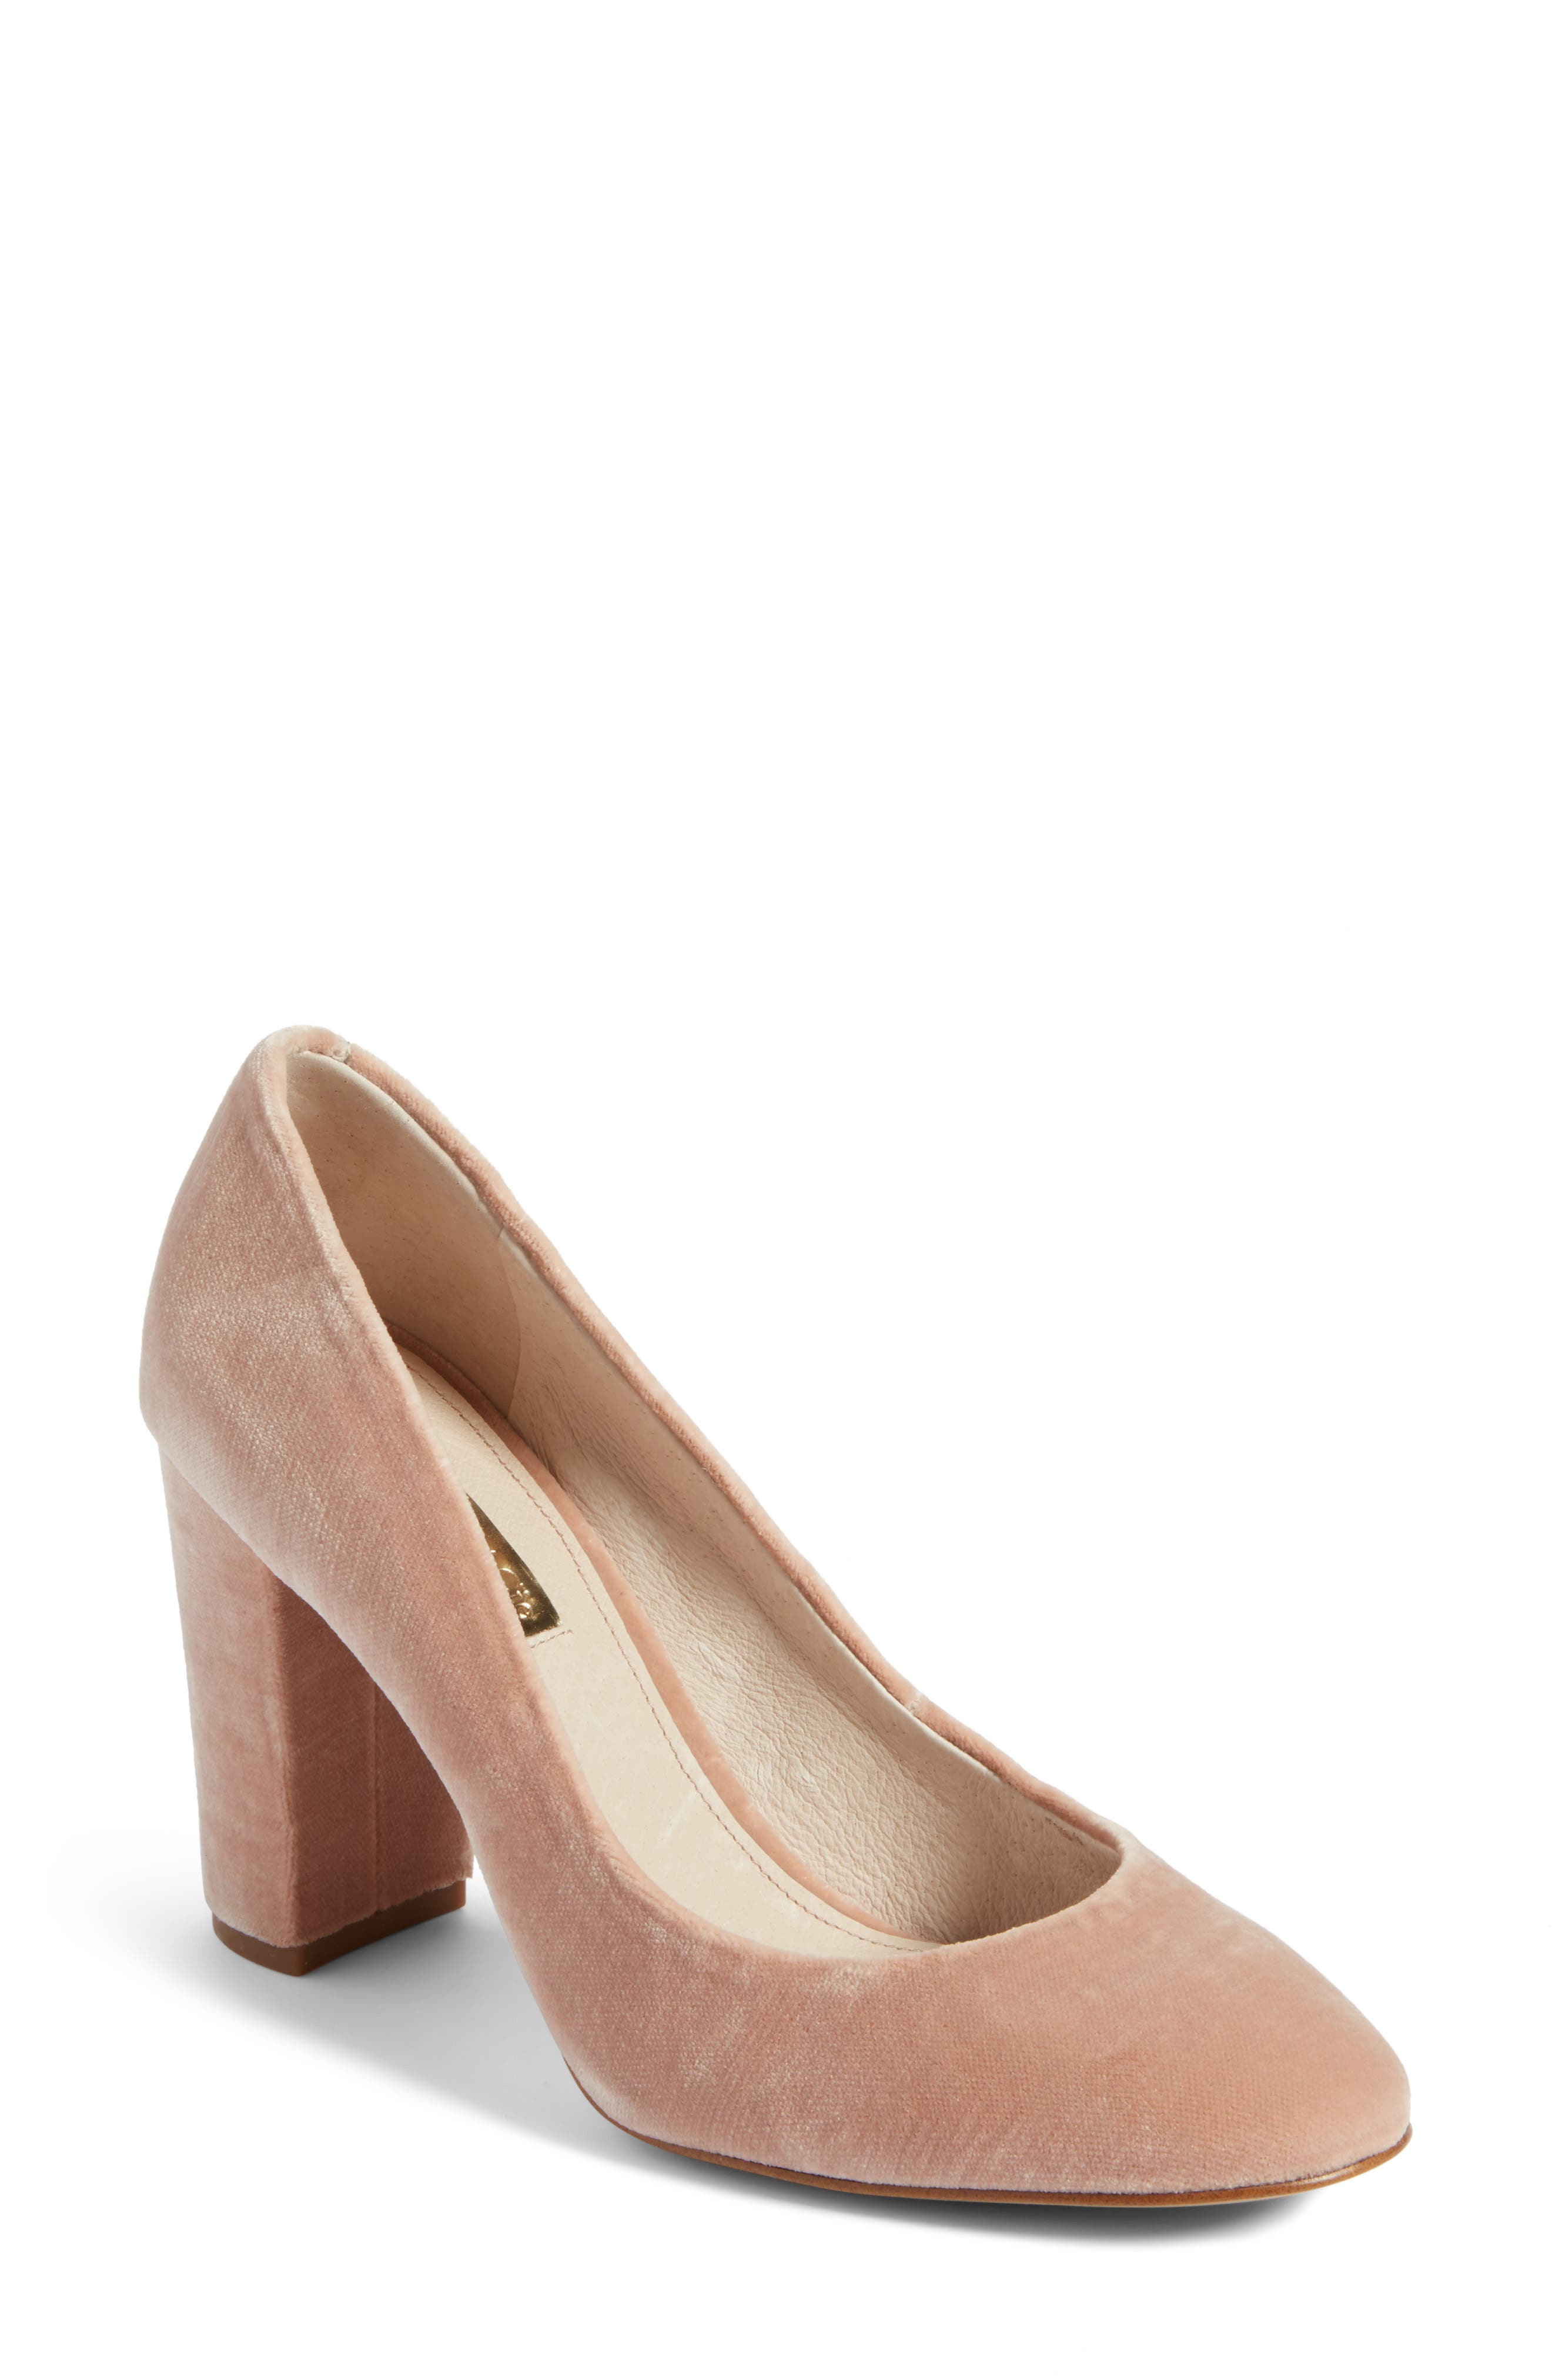 Alternate Image 1 Selected - Louise et Cie Jianna Stacked Heel Pump (Women)